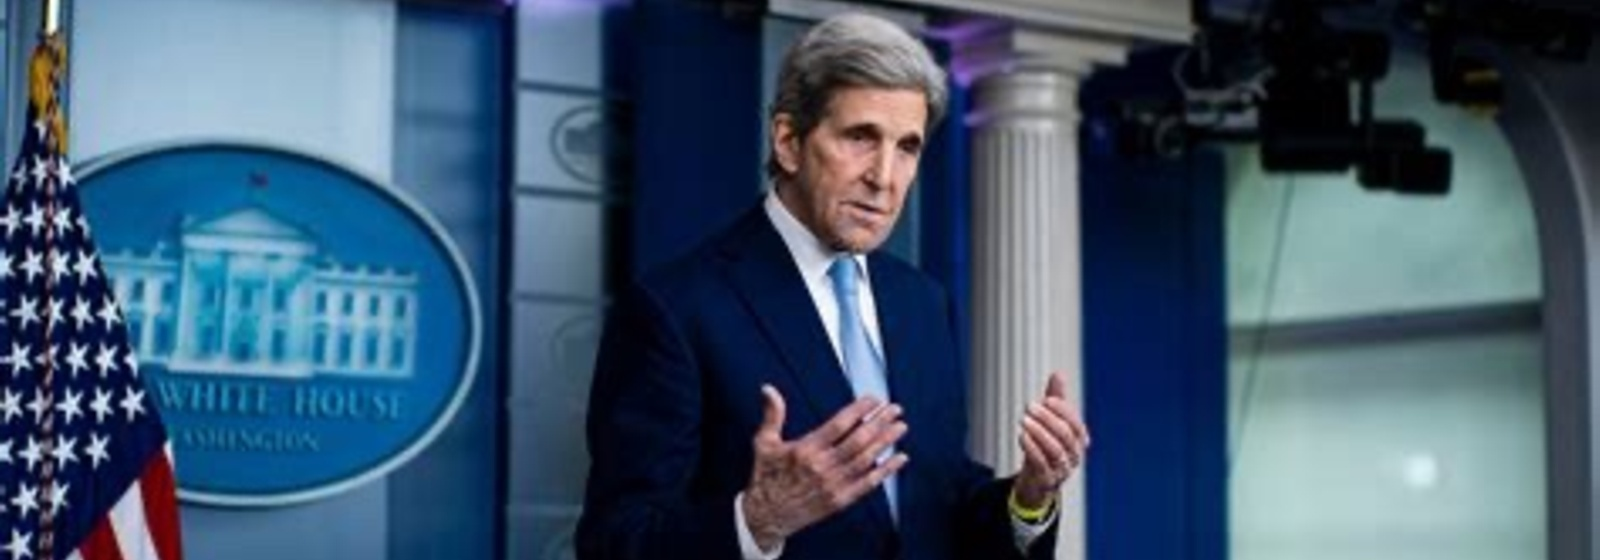 John Kerry Accused of Leaking Secrets to Iran